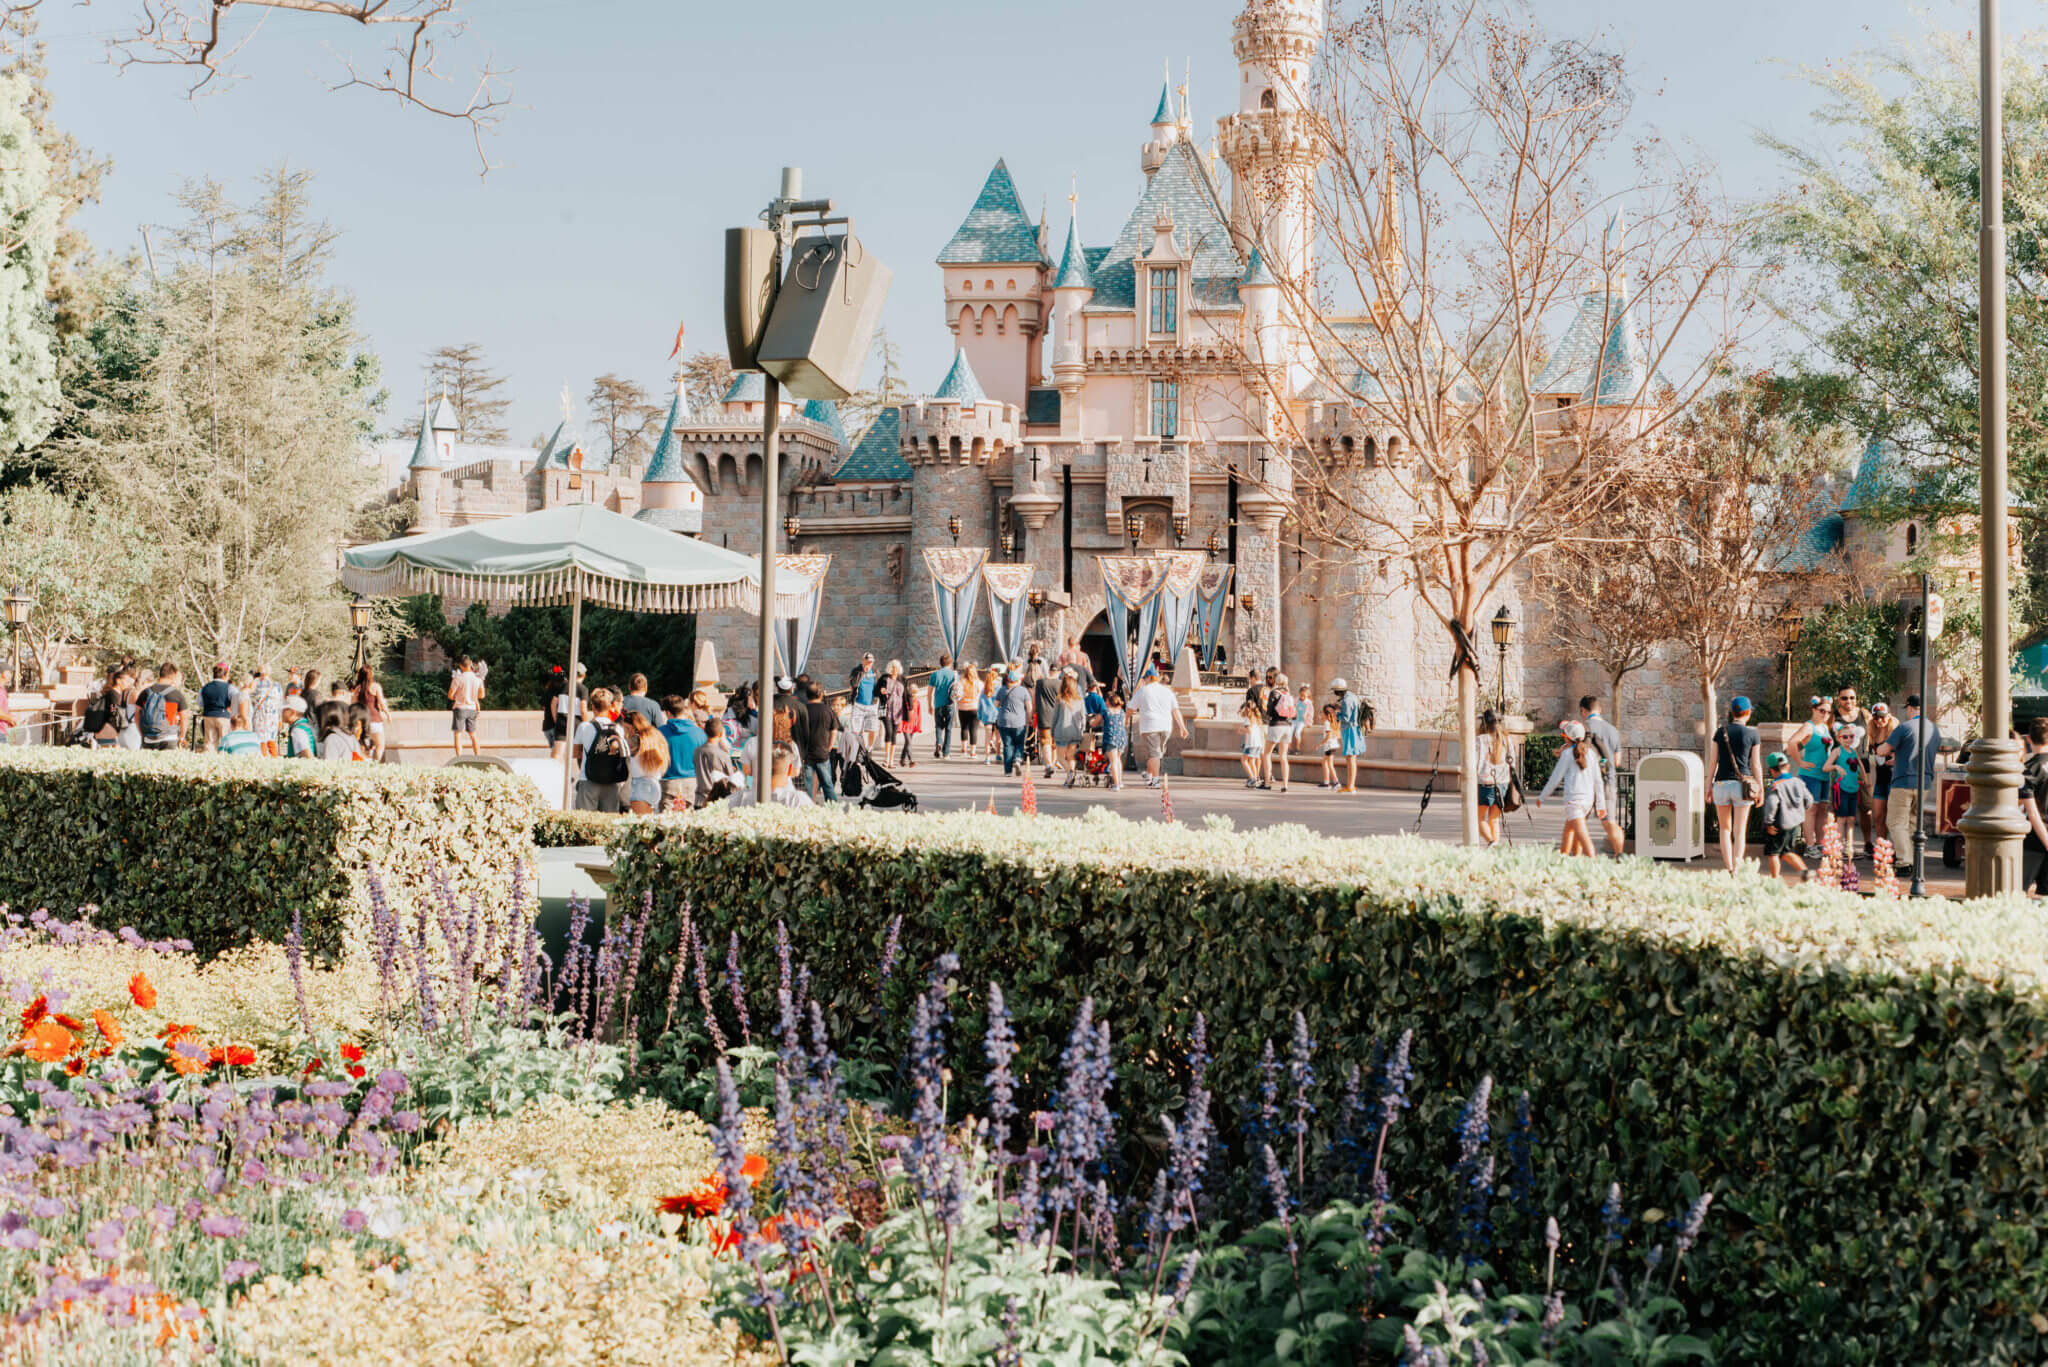 Disneyland Sleeping Beauty Castle with pink filter and flowers in spring